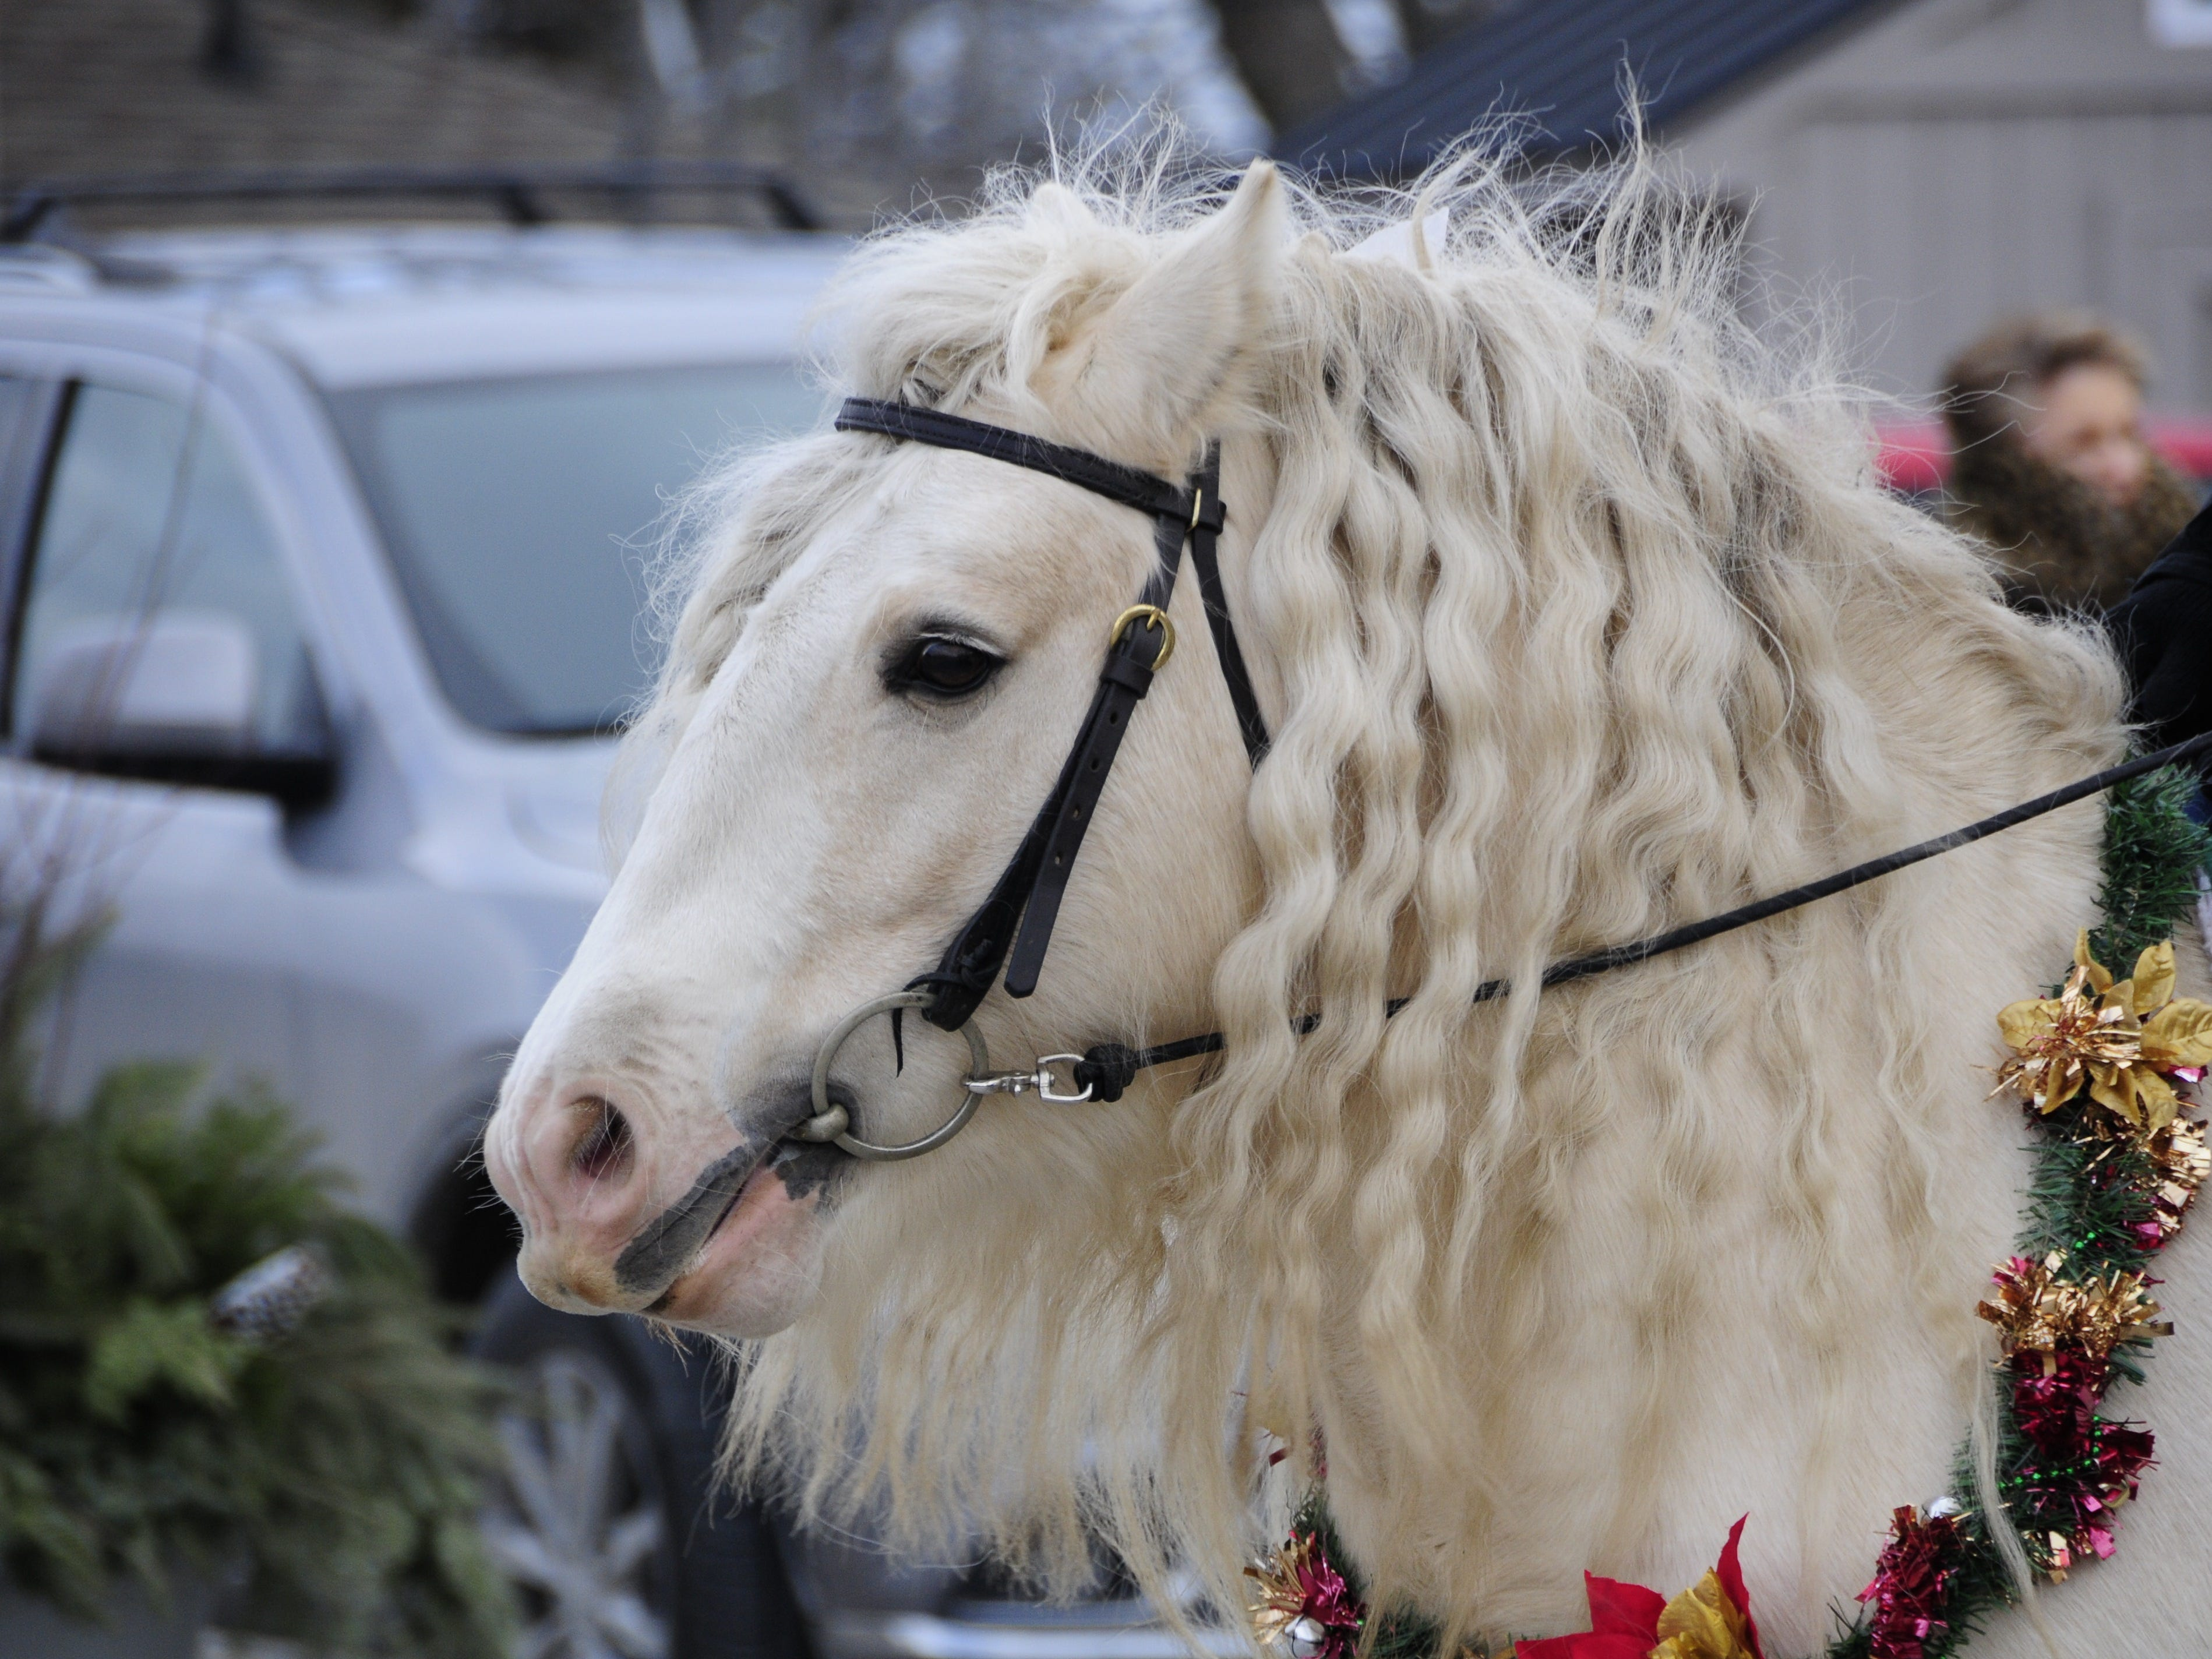 Keisling, a Gypsy Vanner horse, was at the Lexington Old-Fashioned Christmas Horse Parade on Saturday, Dec. 8, 2018.